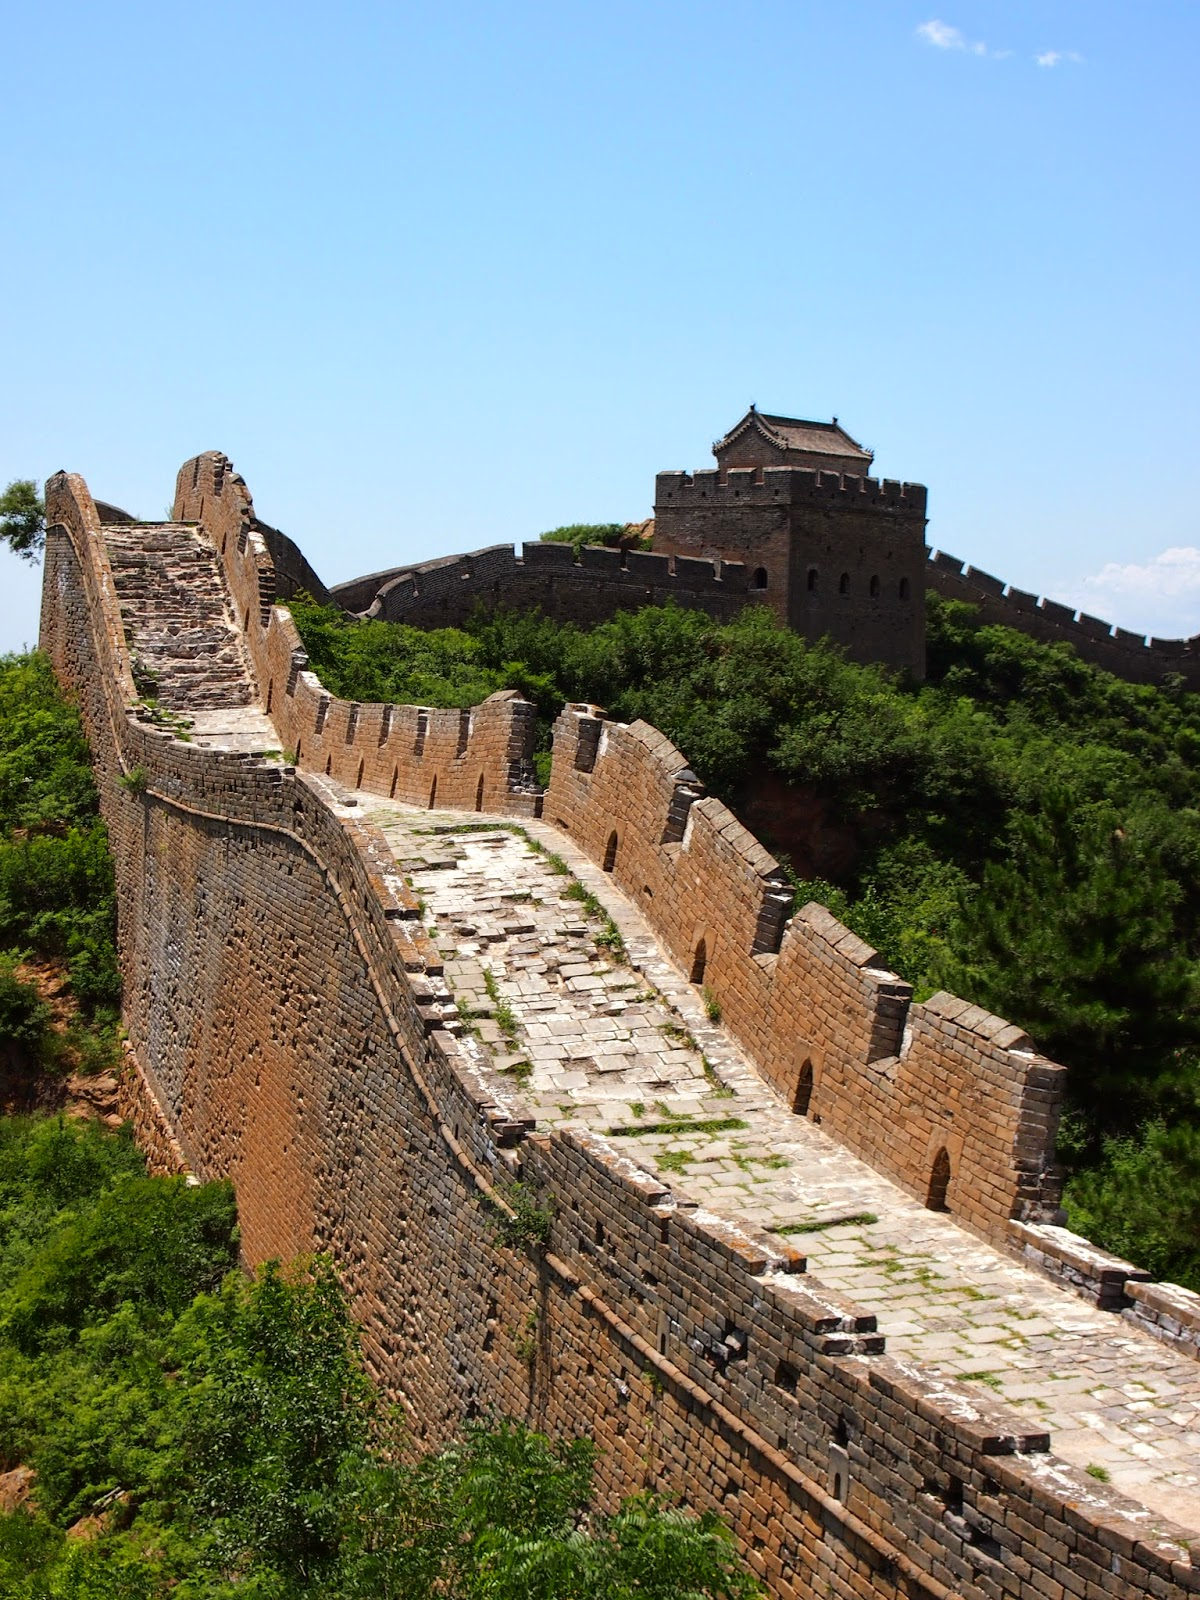 unrestored sections of the Great Wall